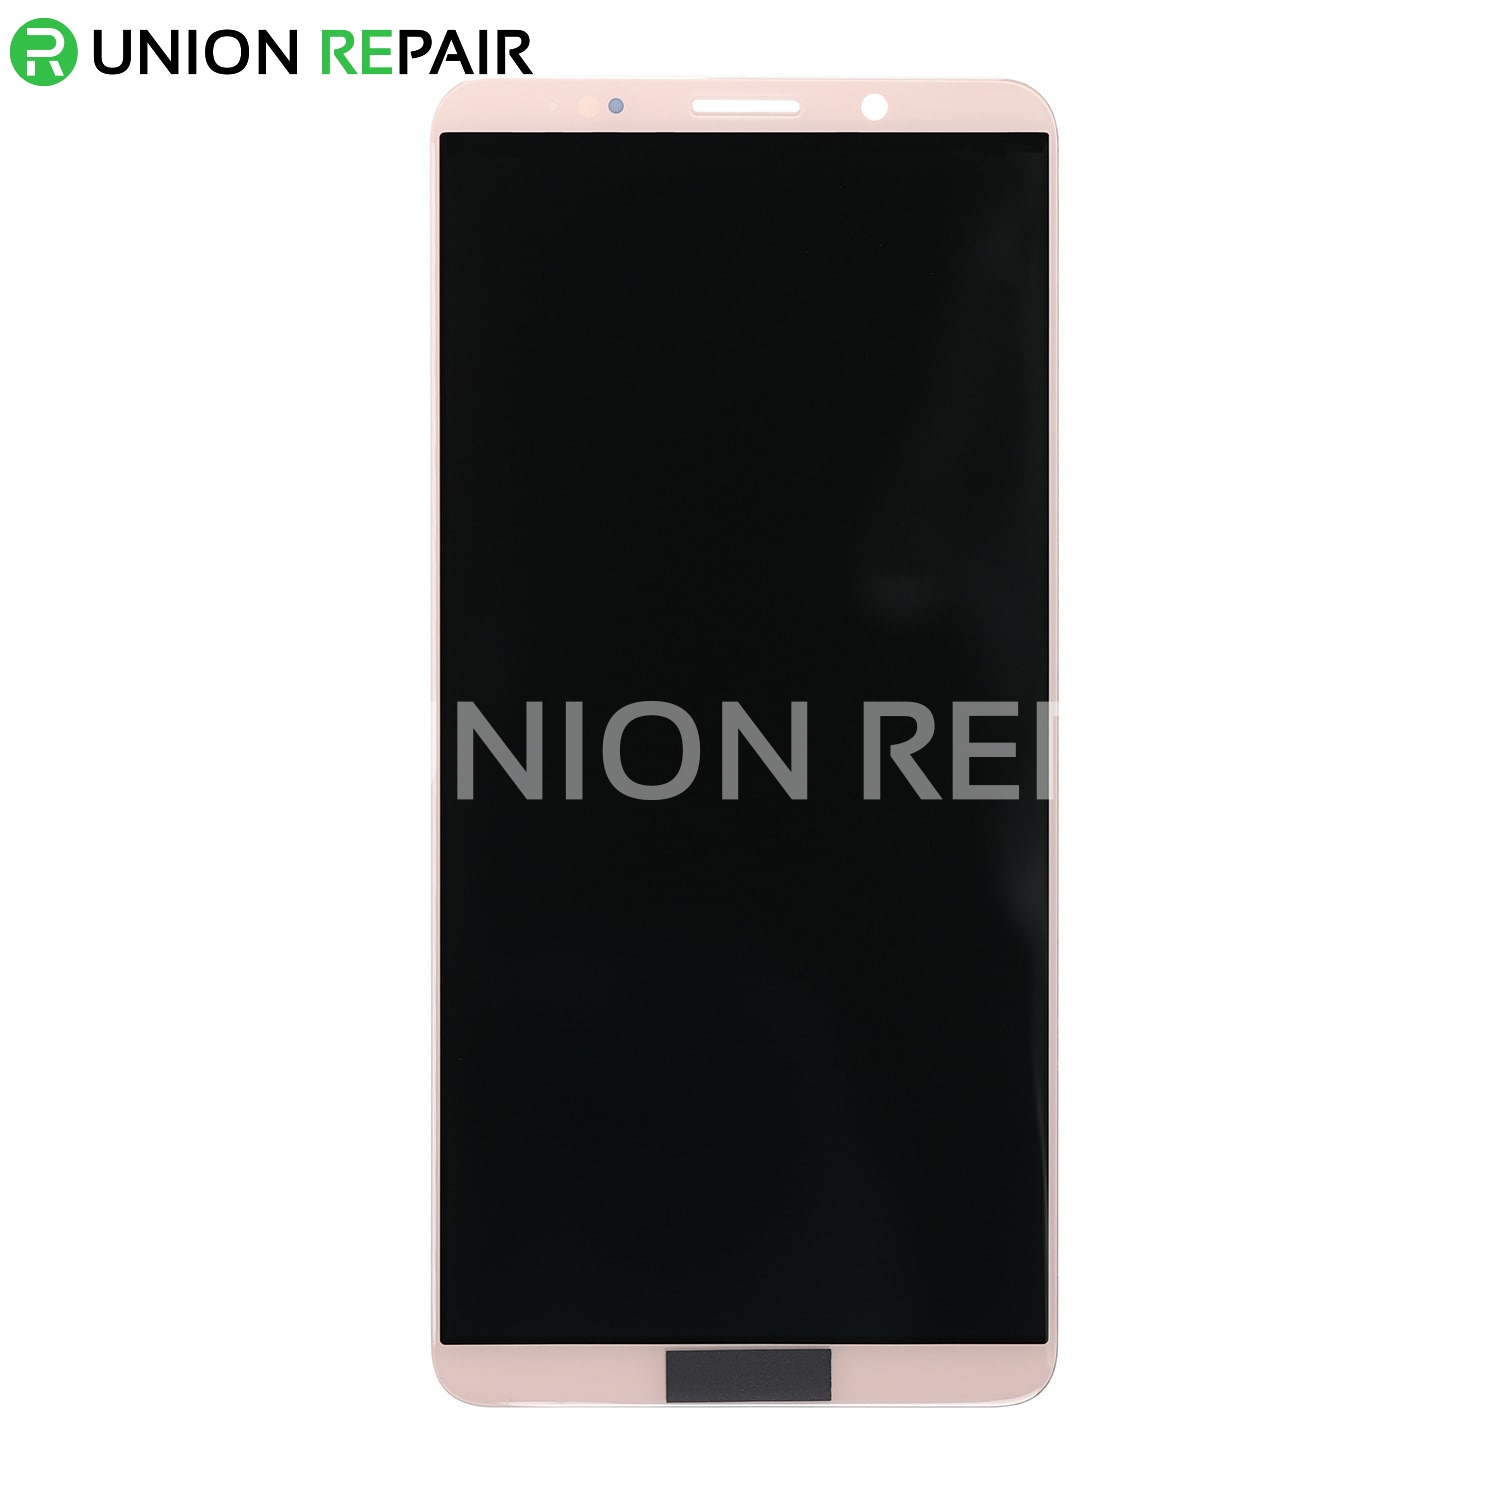 Replacement for Huawei Mate 10 Pro LCD Screen Digitizer Assembly - Pink Gold